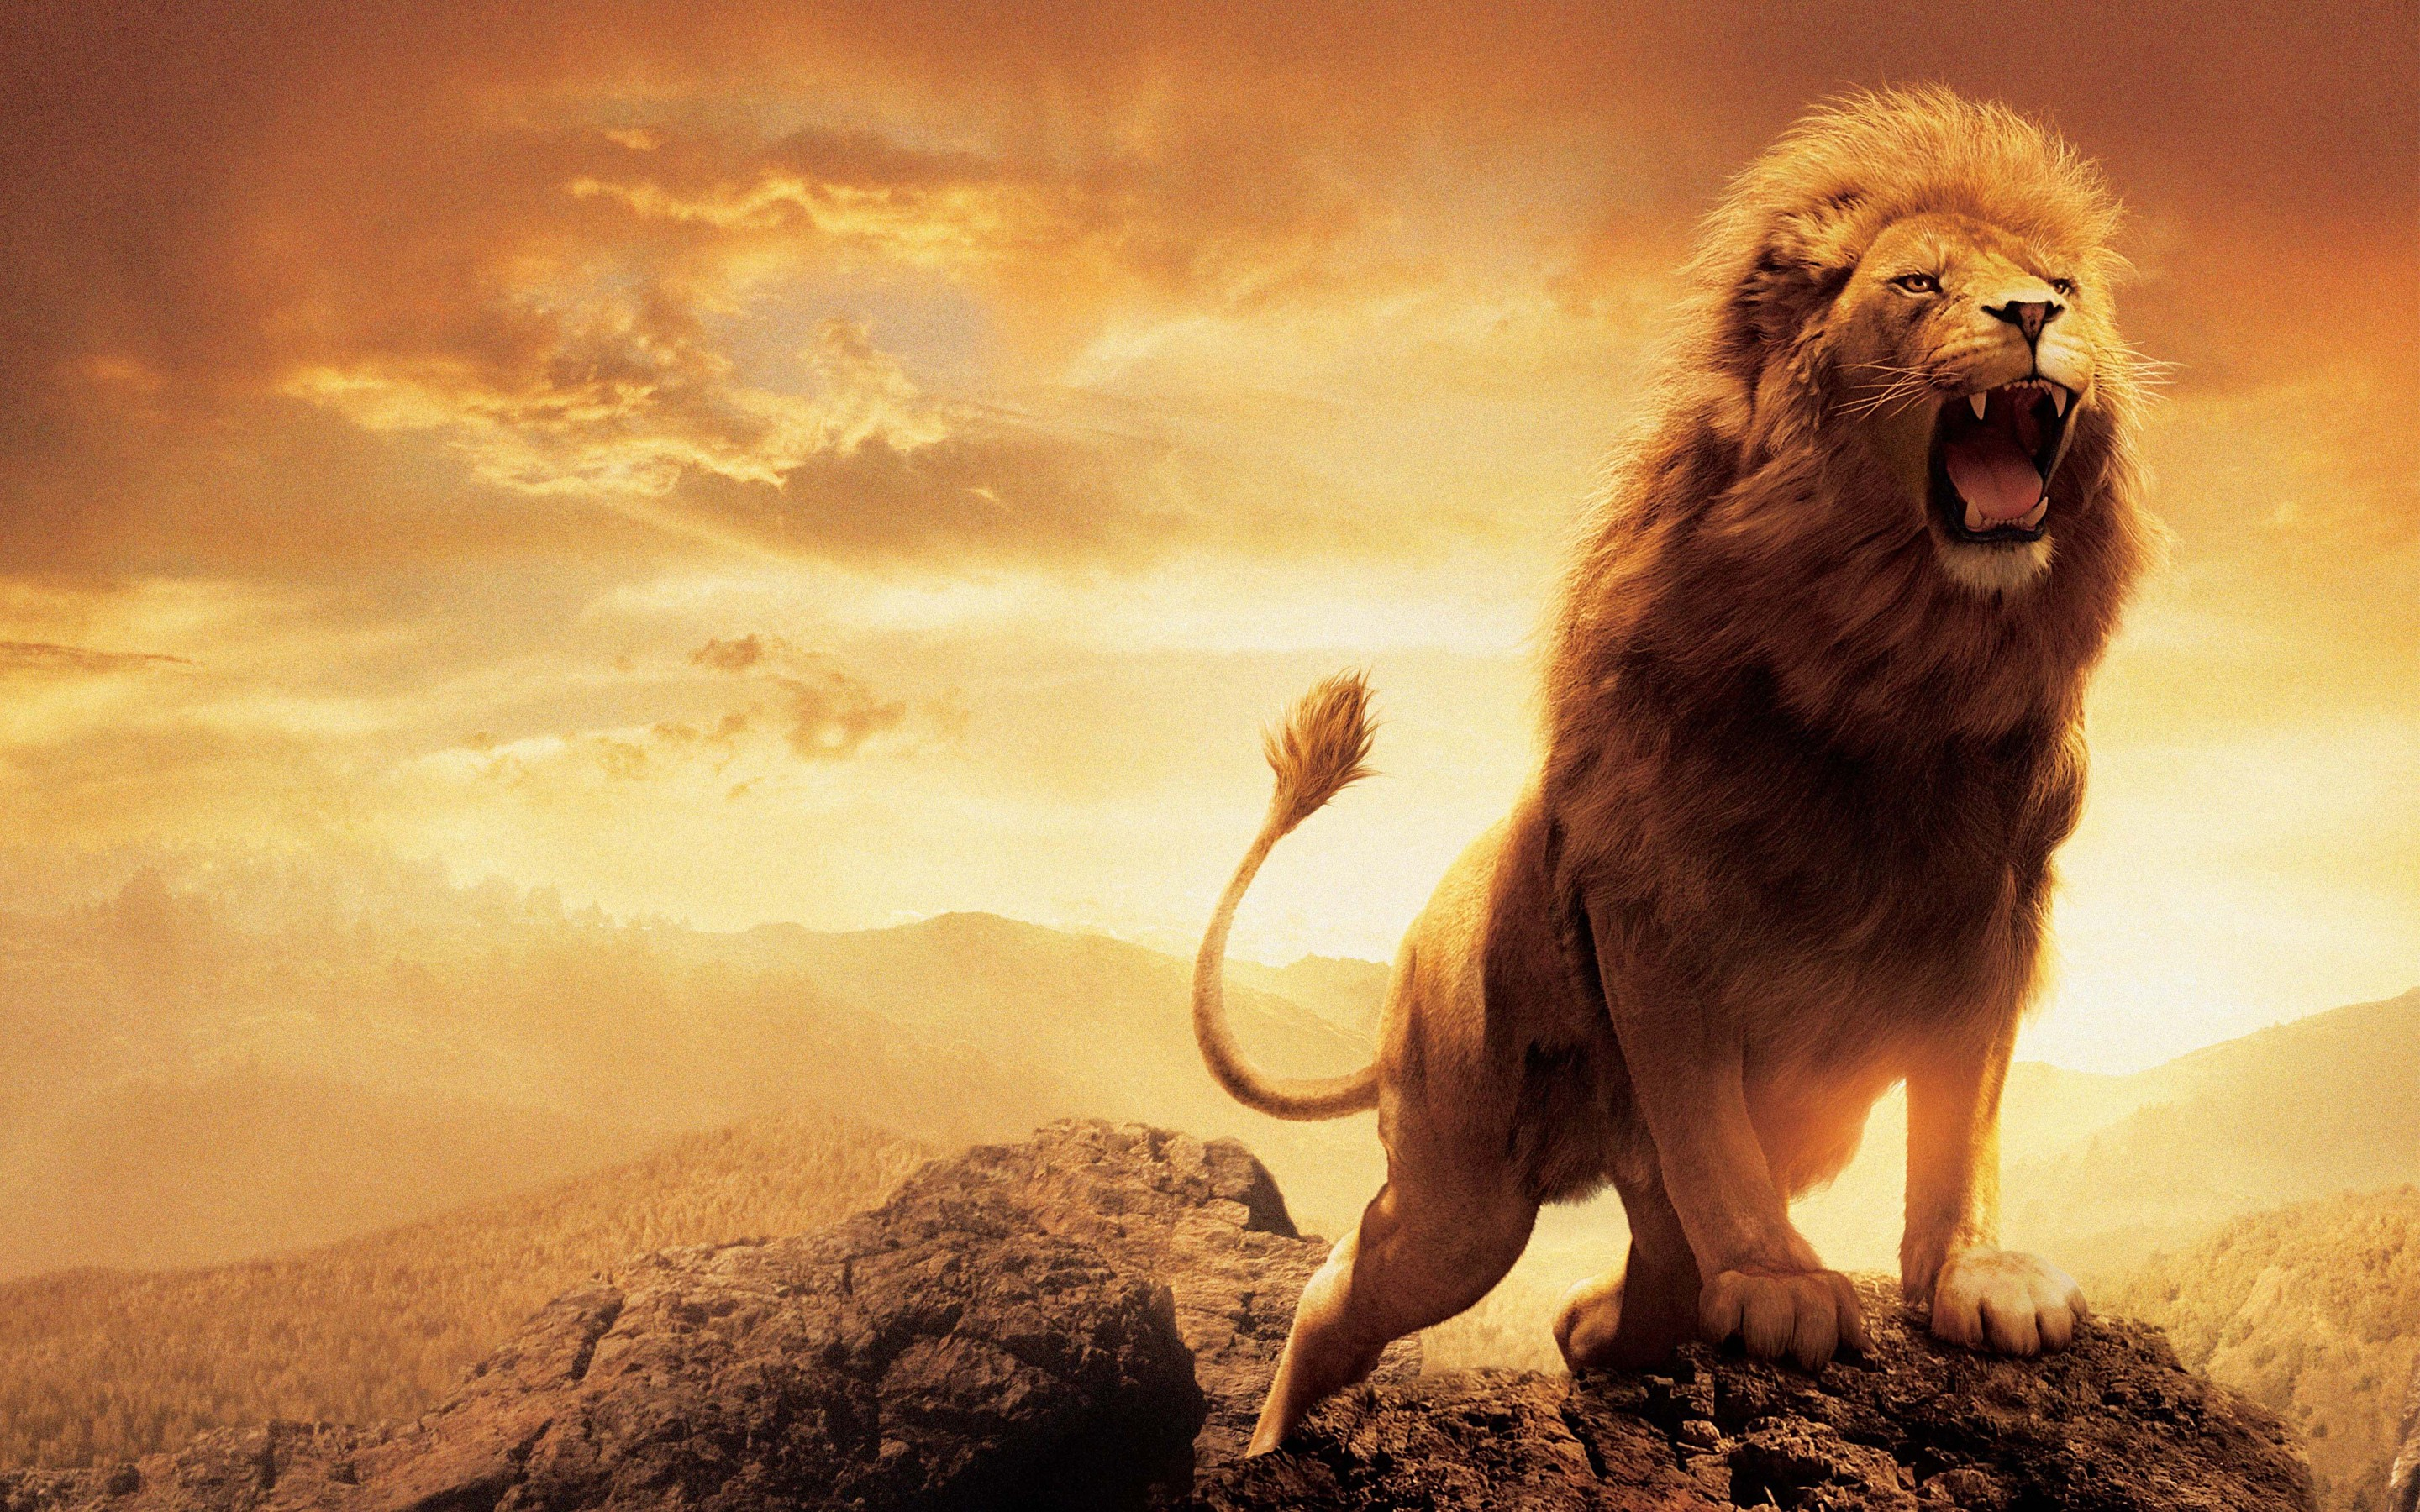 1366x768 narnia lion 1366x768 resolution hd 4k wallpapers, images